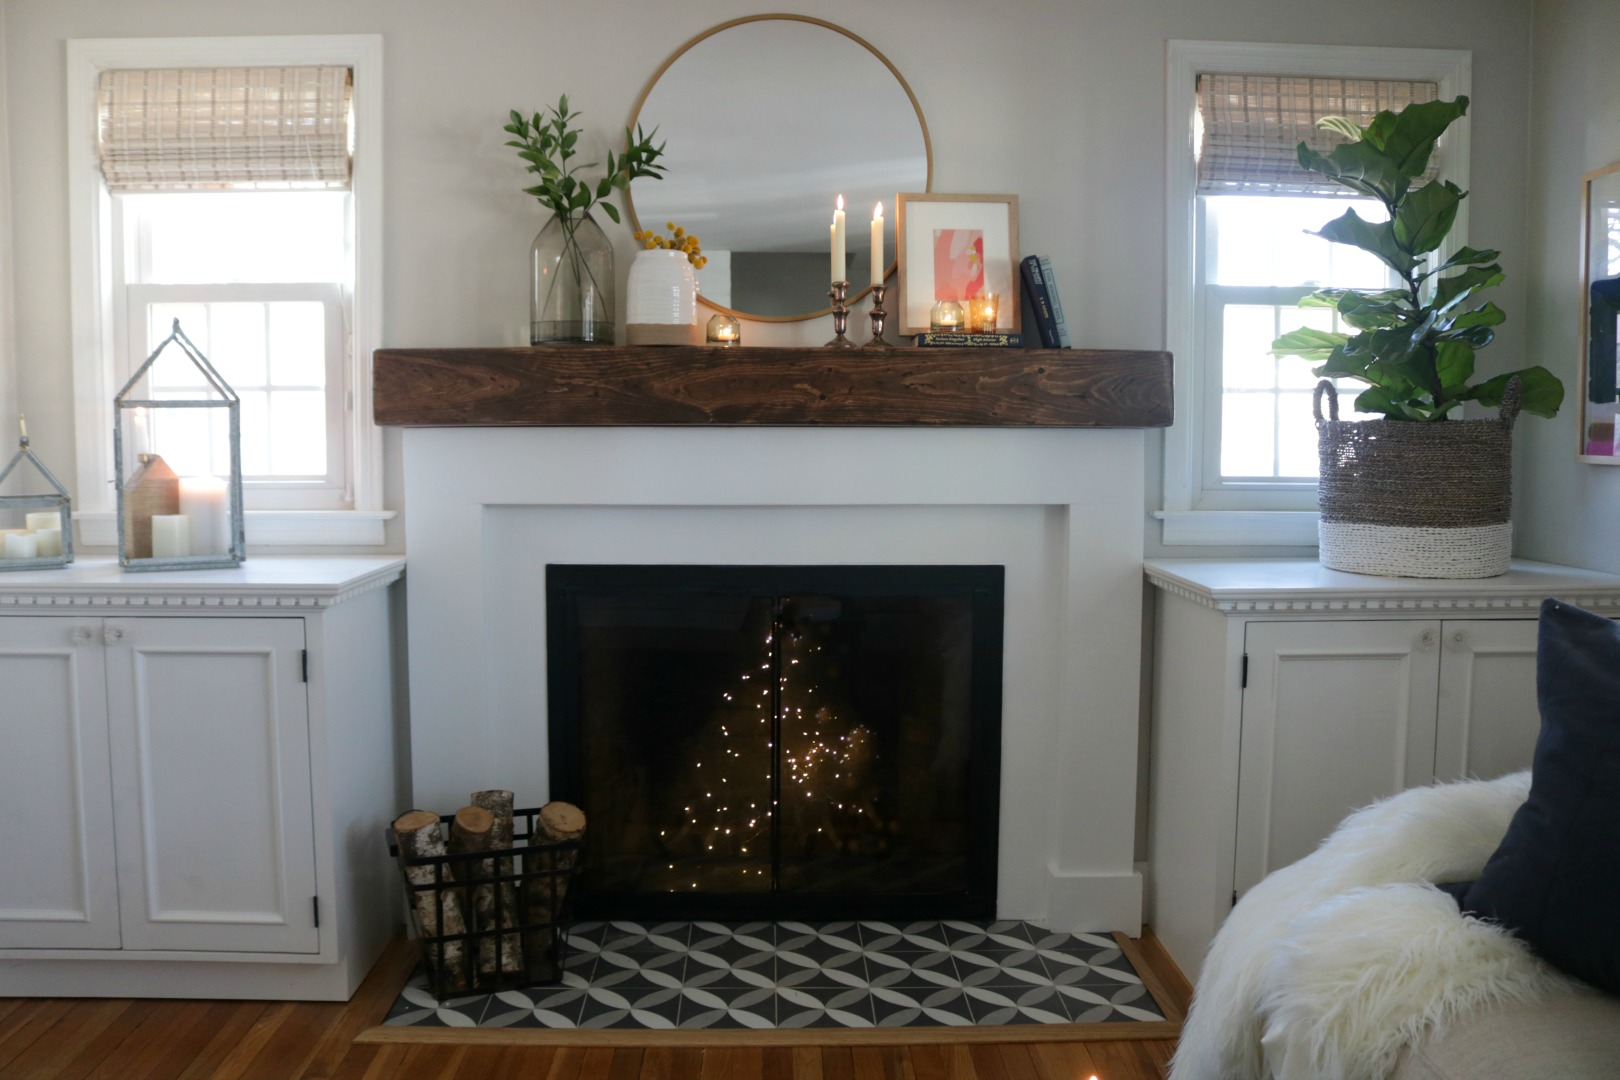 Fireplace Makeover And Styled With Decor From Target